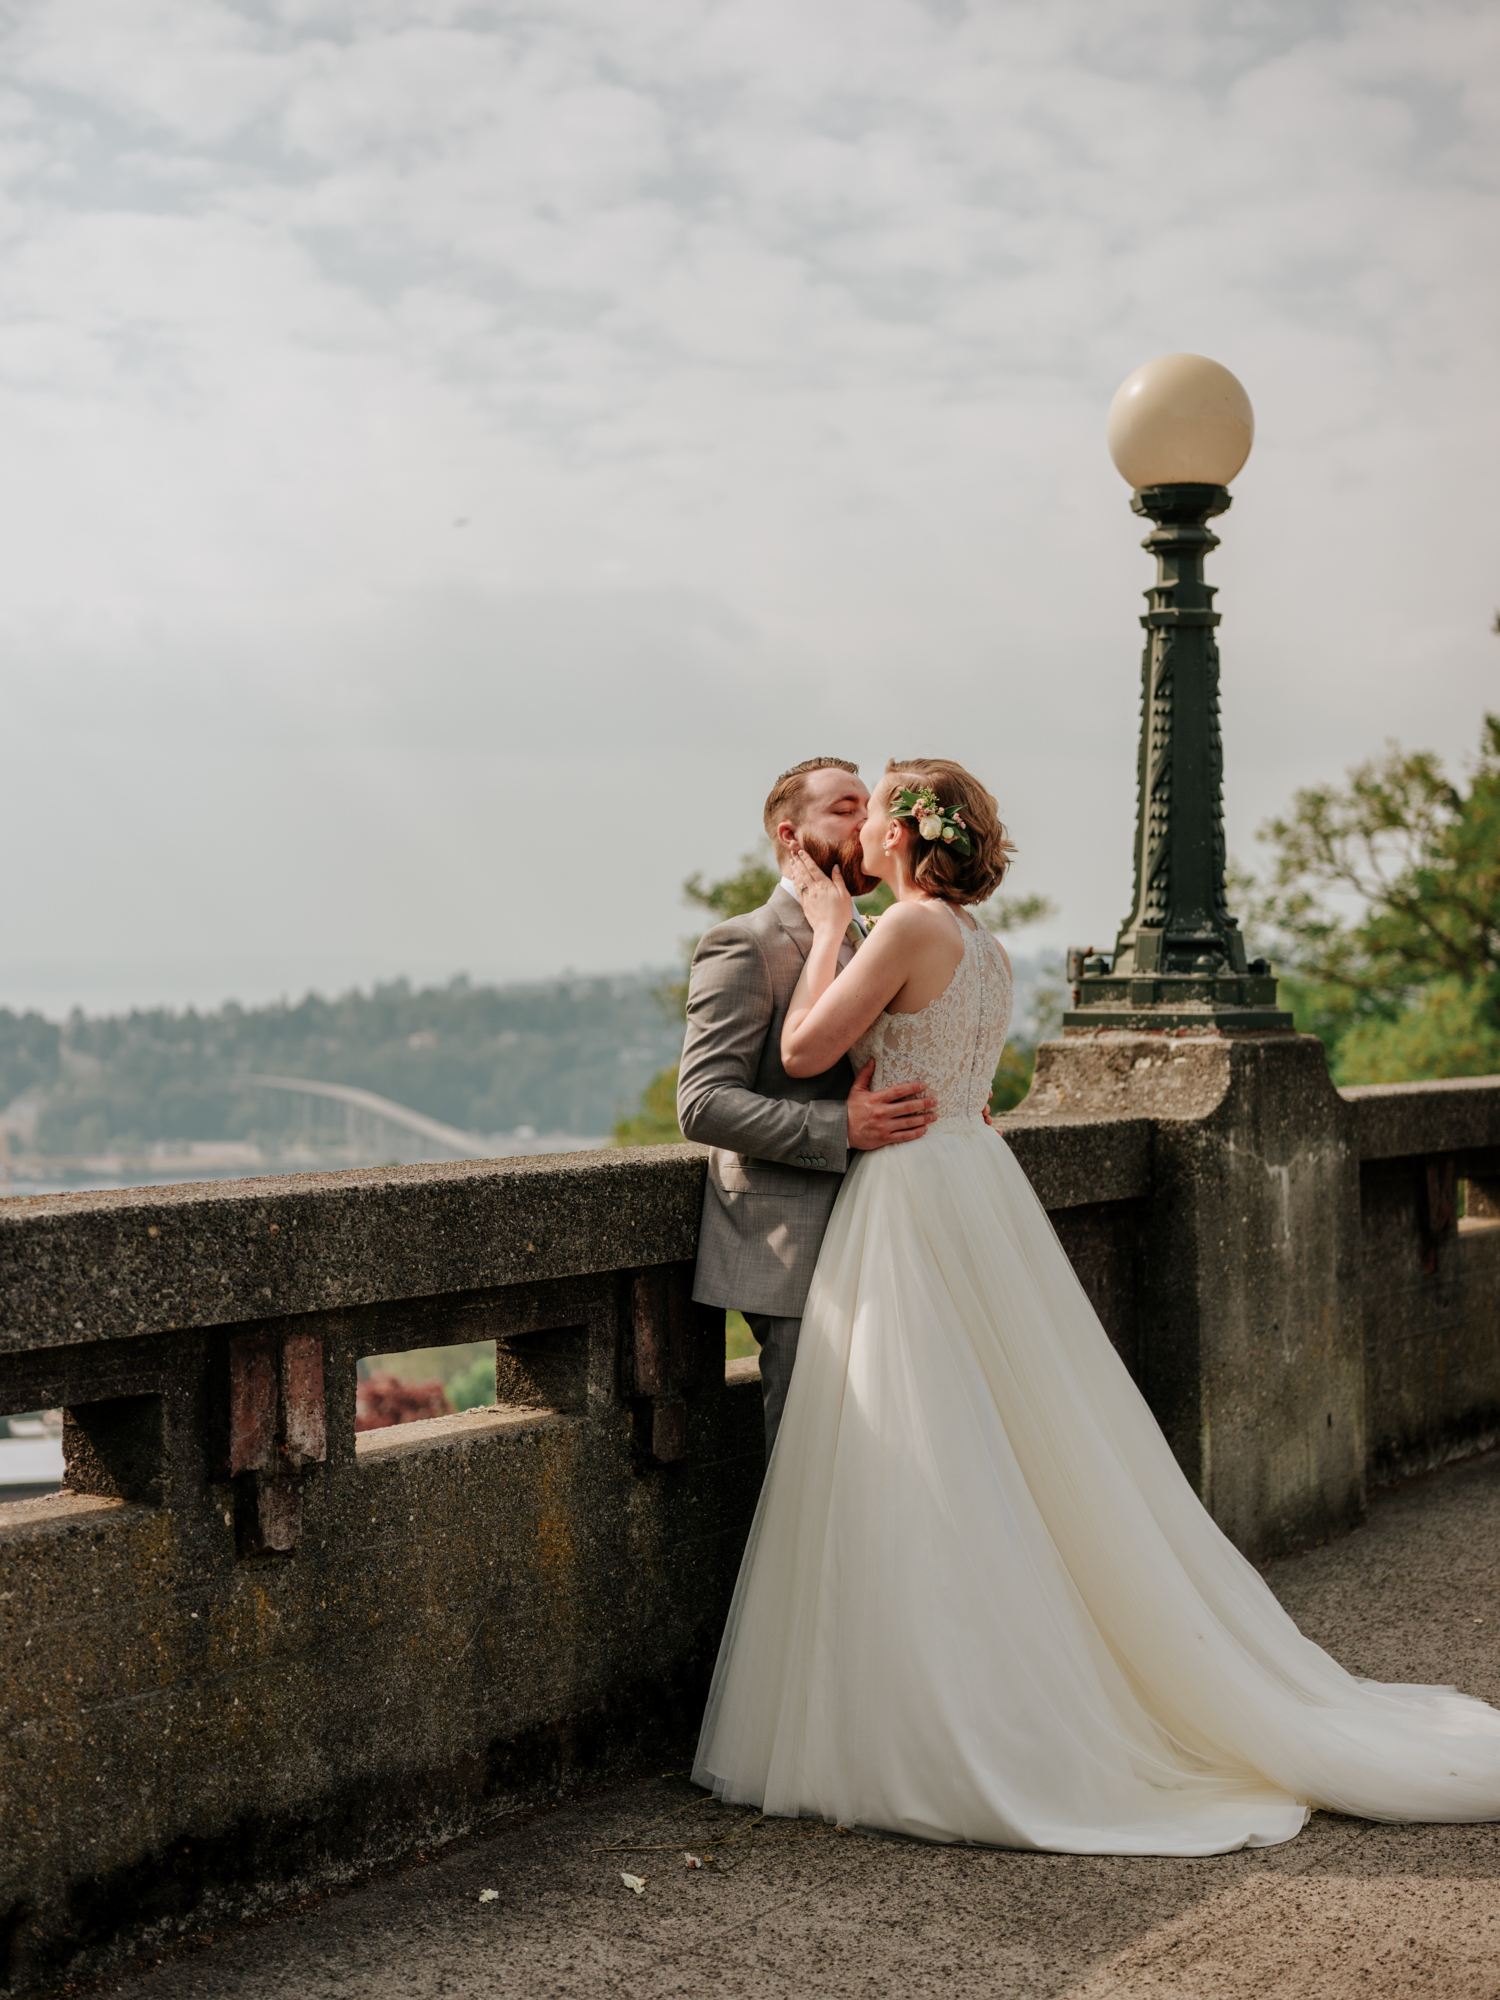 Stolen Glimpses Seattle Wedding Photographer Hidden Meadows Wedding 91.jpg